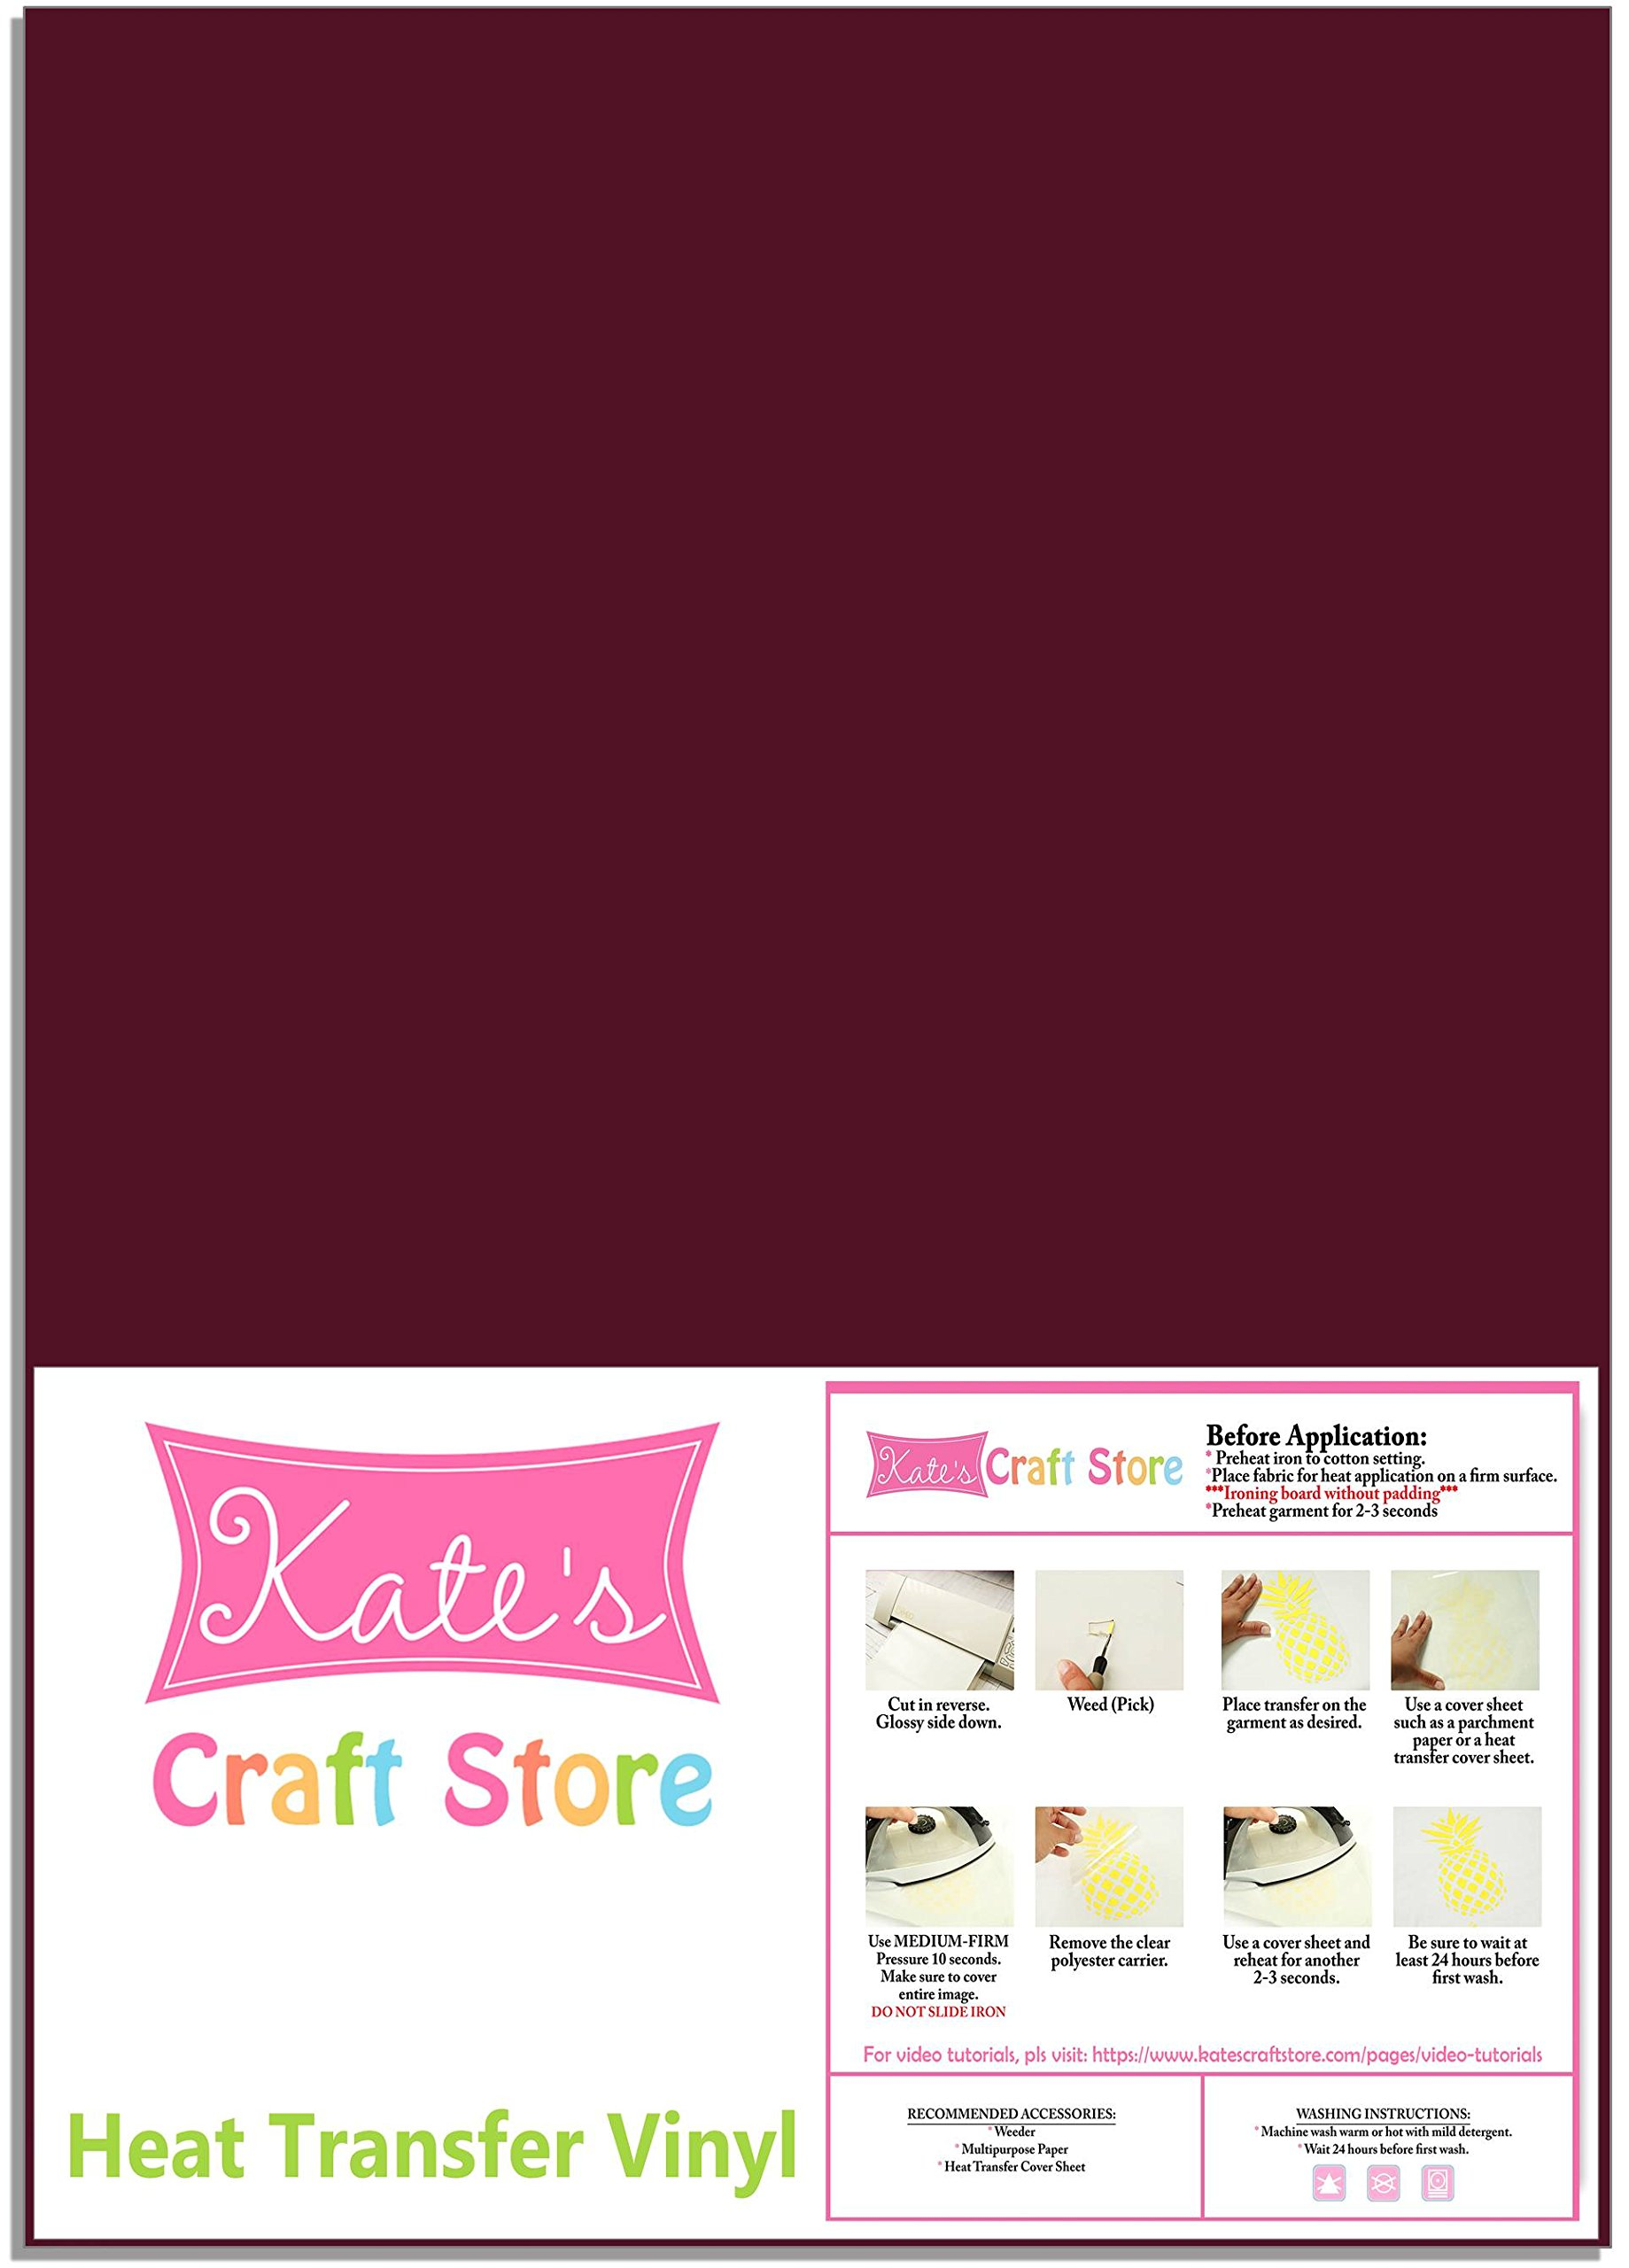 Three (3) 12'' x 15'' Sheets of Siser Easyweed Heat Transfer Vinyl (HTV) (Maroon) by Kate's Craft Store